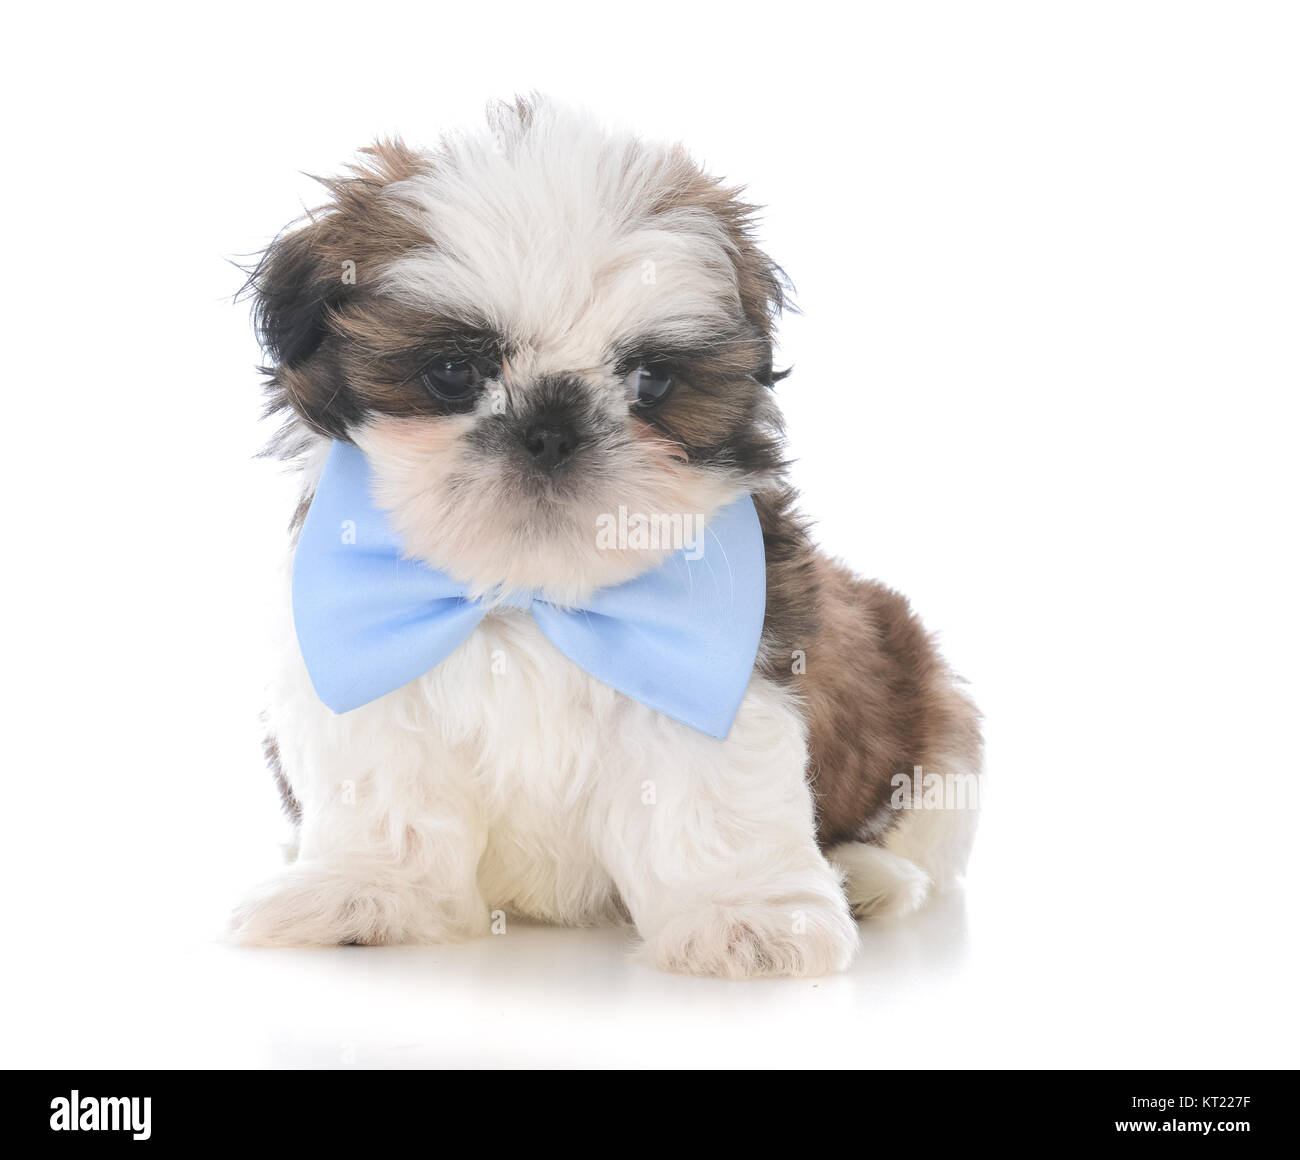 Male Shih Tzu Puppy Wearing A Blue Bow Tie On White Background Stock